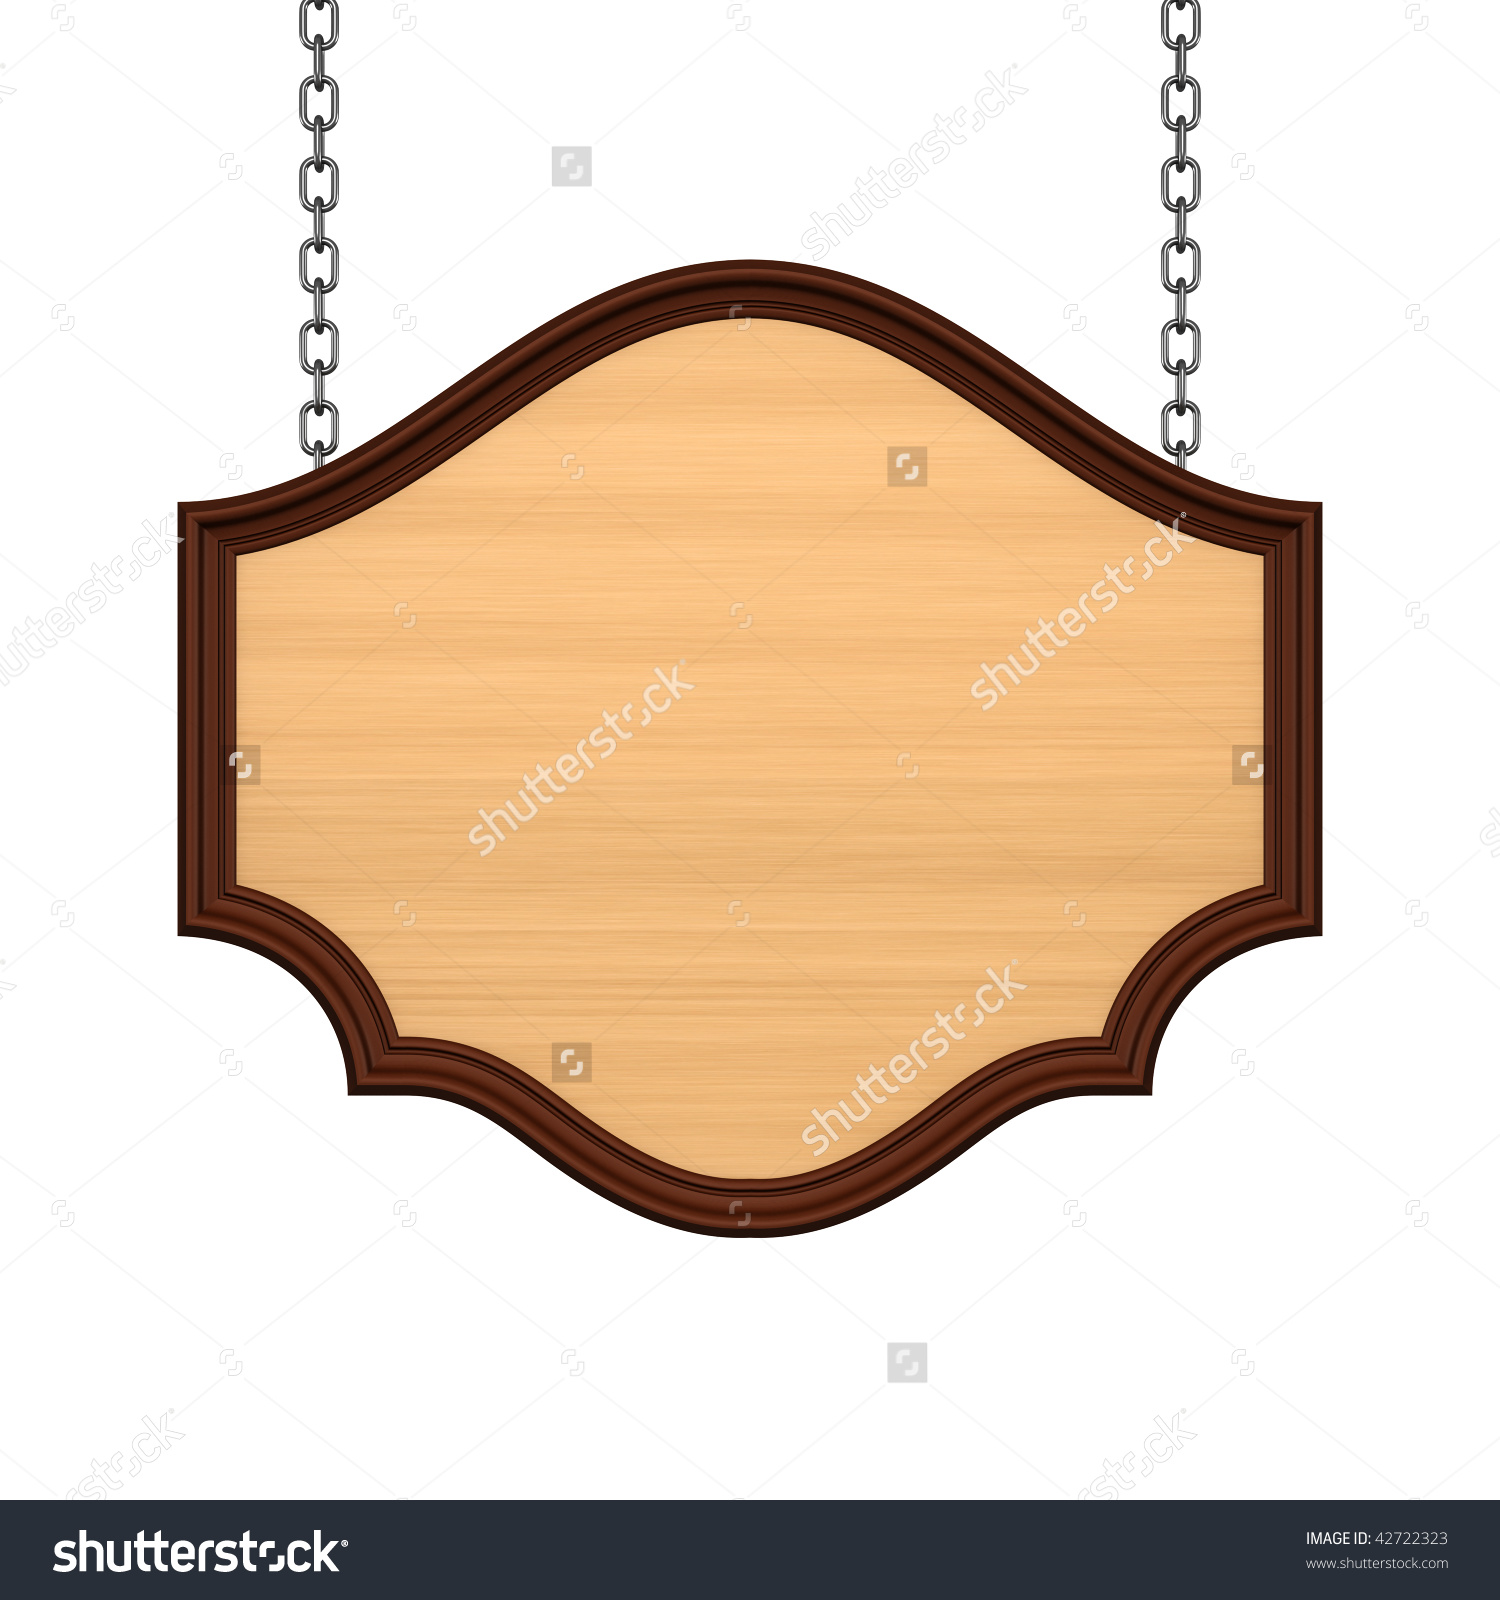 Wooden Signboard Chain Stock Illustration 42722323.